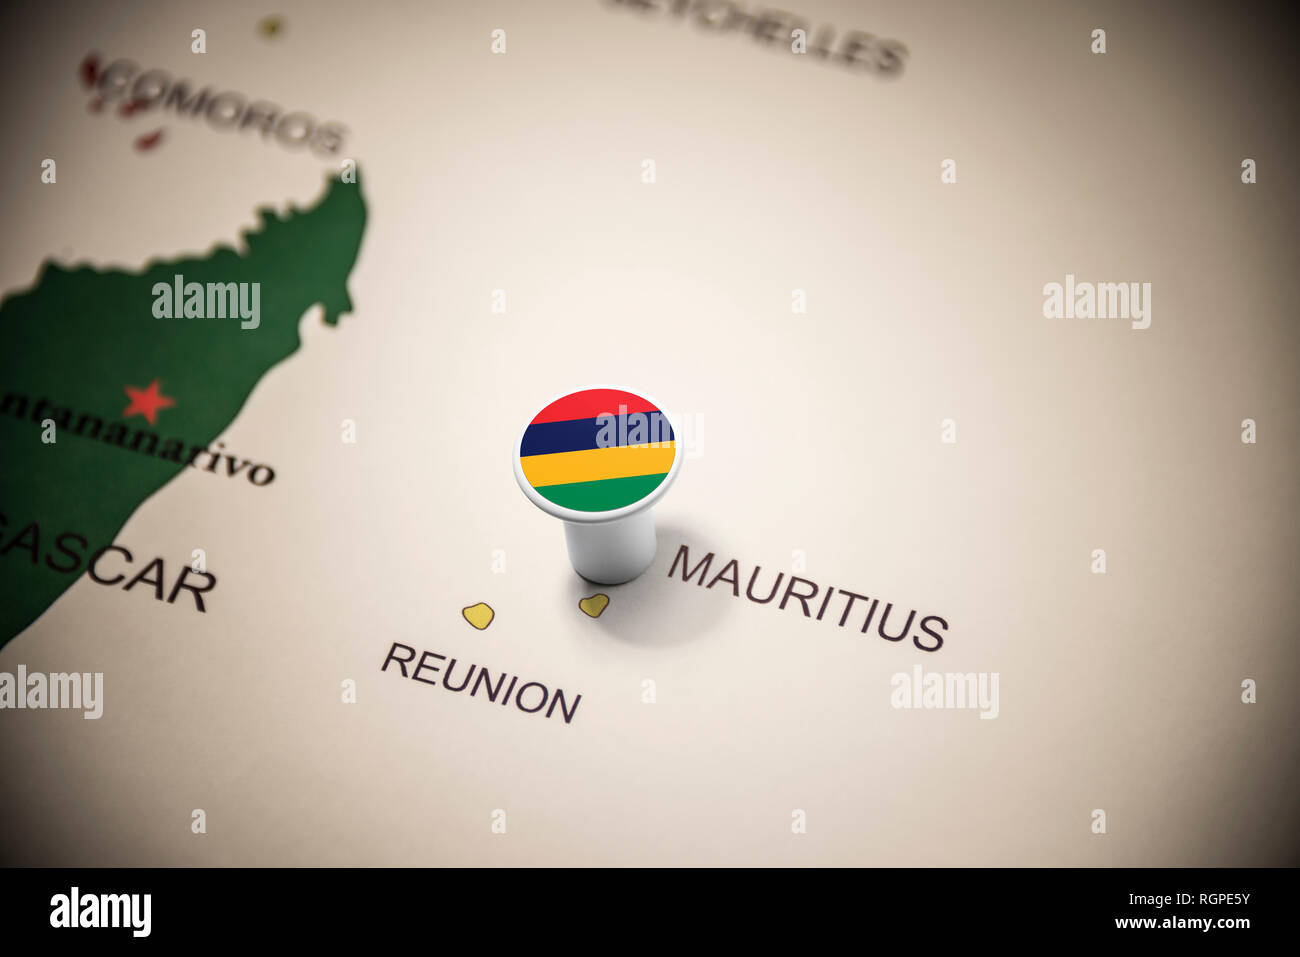 Mauritius marked with a flag on the map - Stock Image